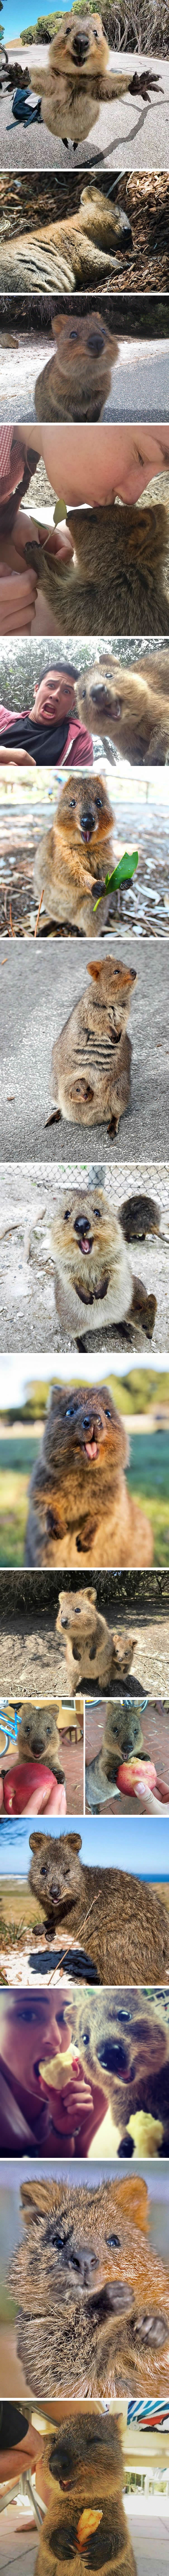 Snap-Happy Quokka Is The Most Playful Creature On The Planet